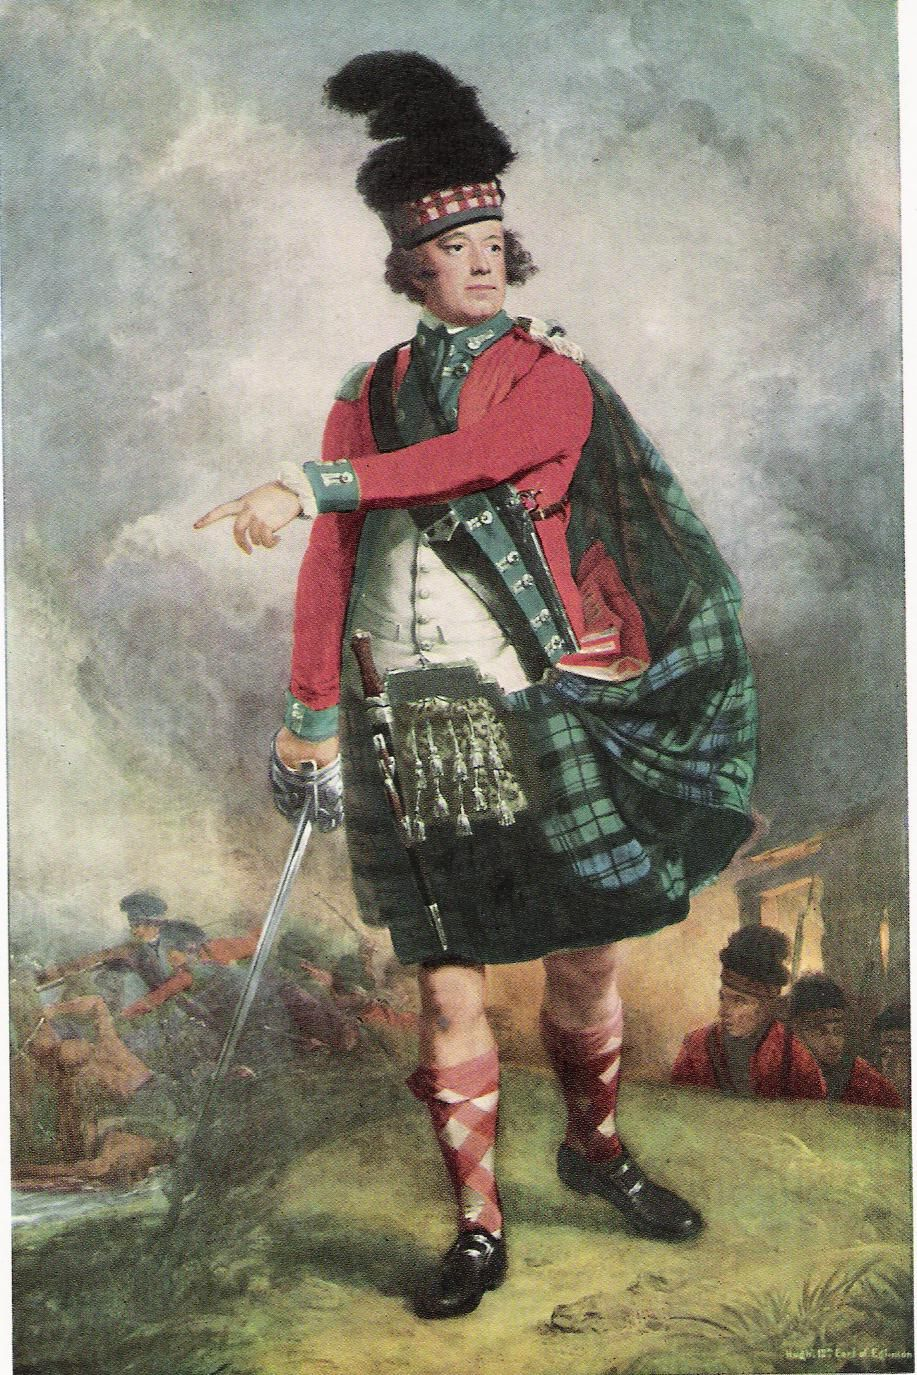 william wallace the man the myth essay One of the great myths in scotland's national past is the life of sir william wallac  (d  'burel man'), and whichwas a product of contemporary patriotism perhaps   feet 10 inches): g morton 'review essay: sir william wallace and other tall.